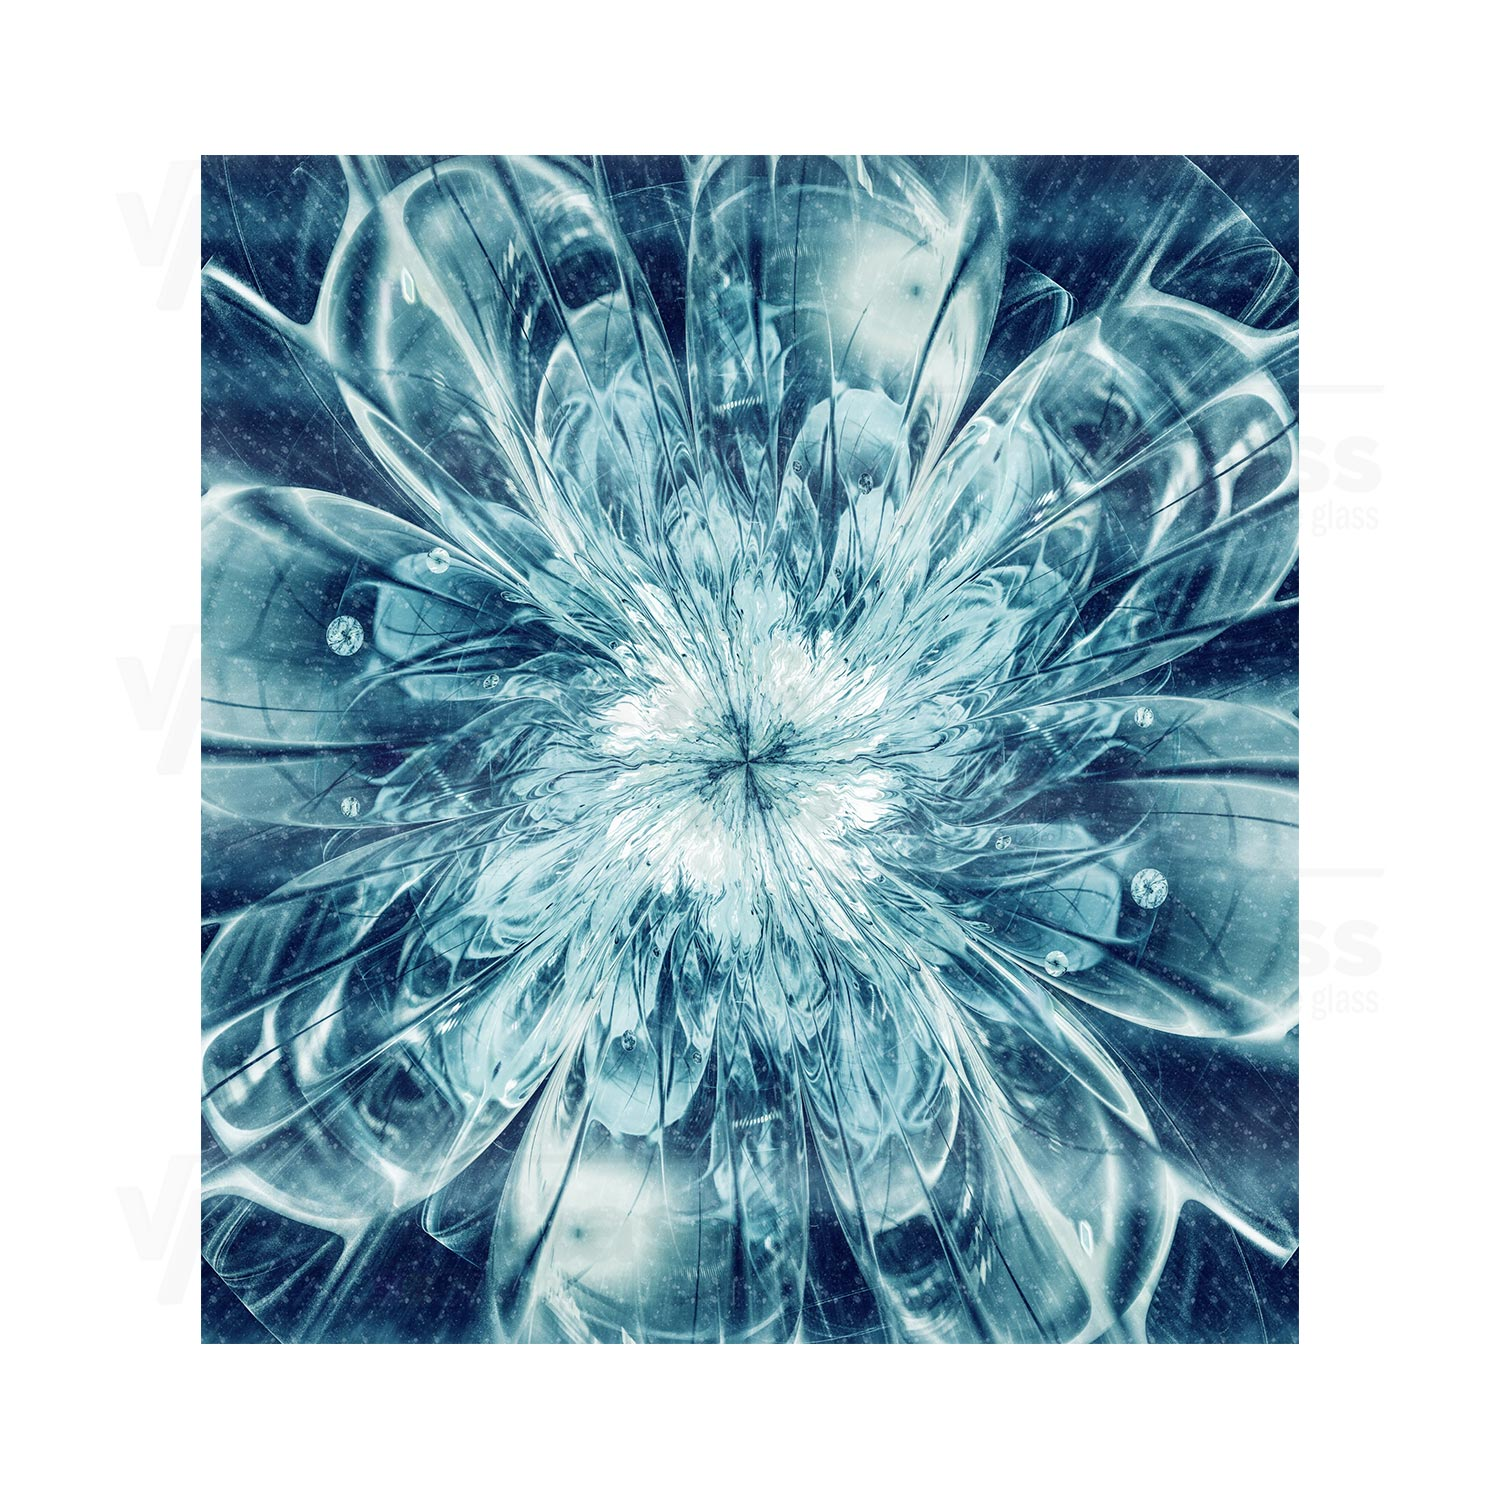 55cm Diameter Adjustable Height 60 75 Cm Coffee Table: Splashback Witha A Fractal Flower ANY SIZE